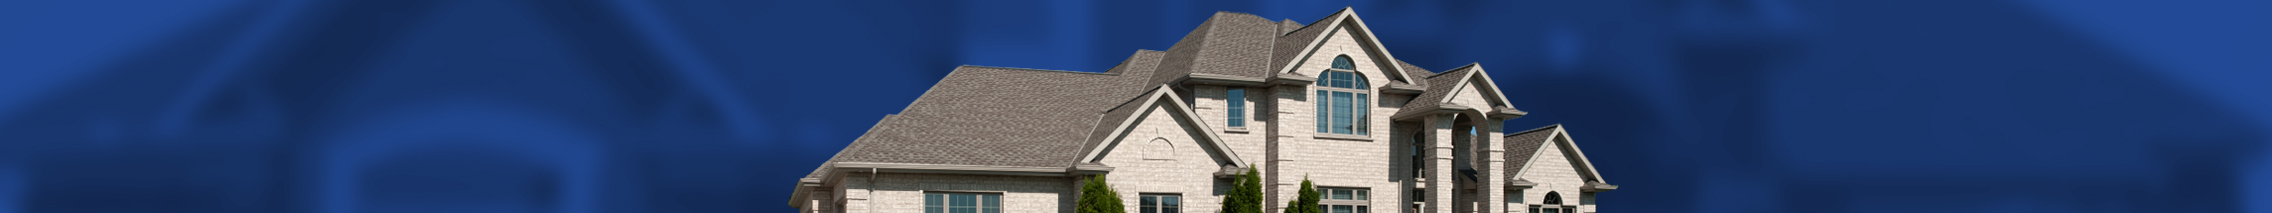 Contact Dunbar Roofing Amp Siding Call 610 644 6450 With